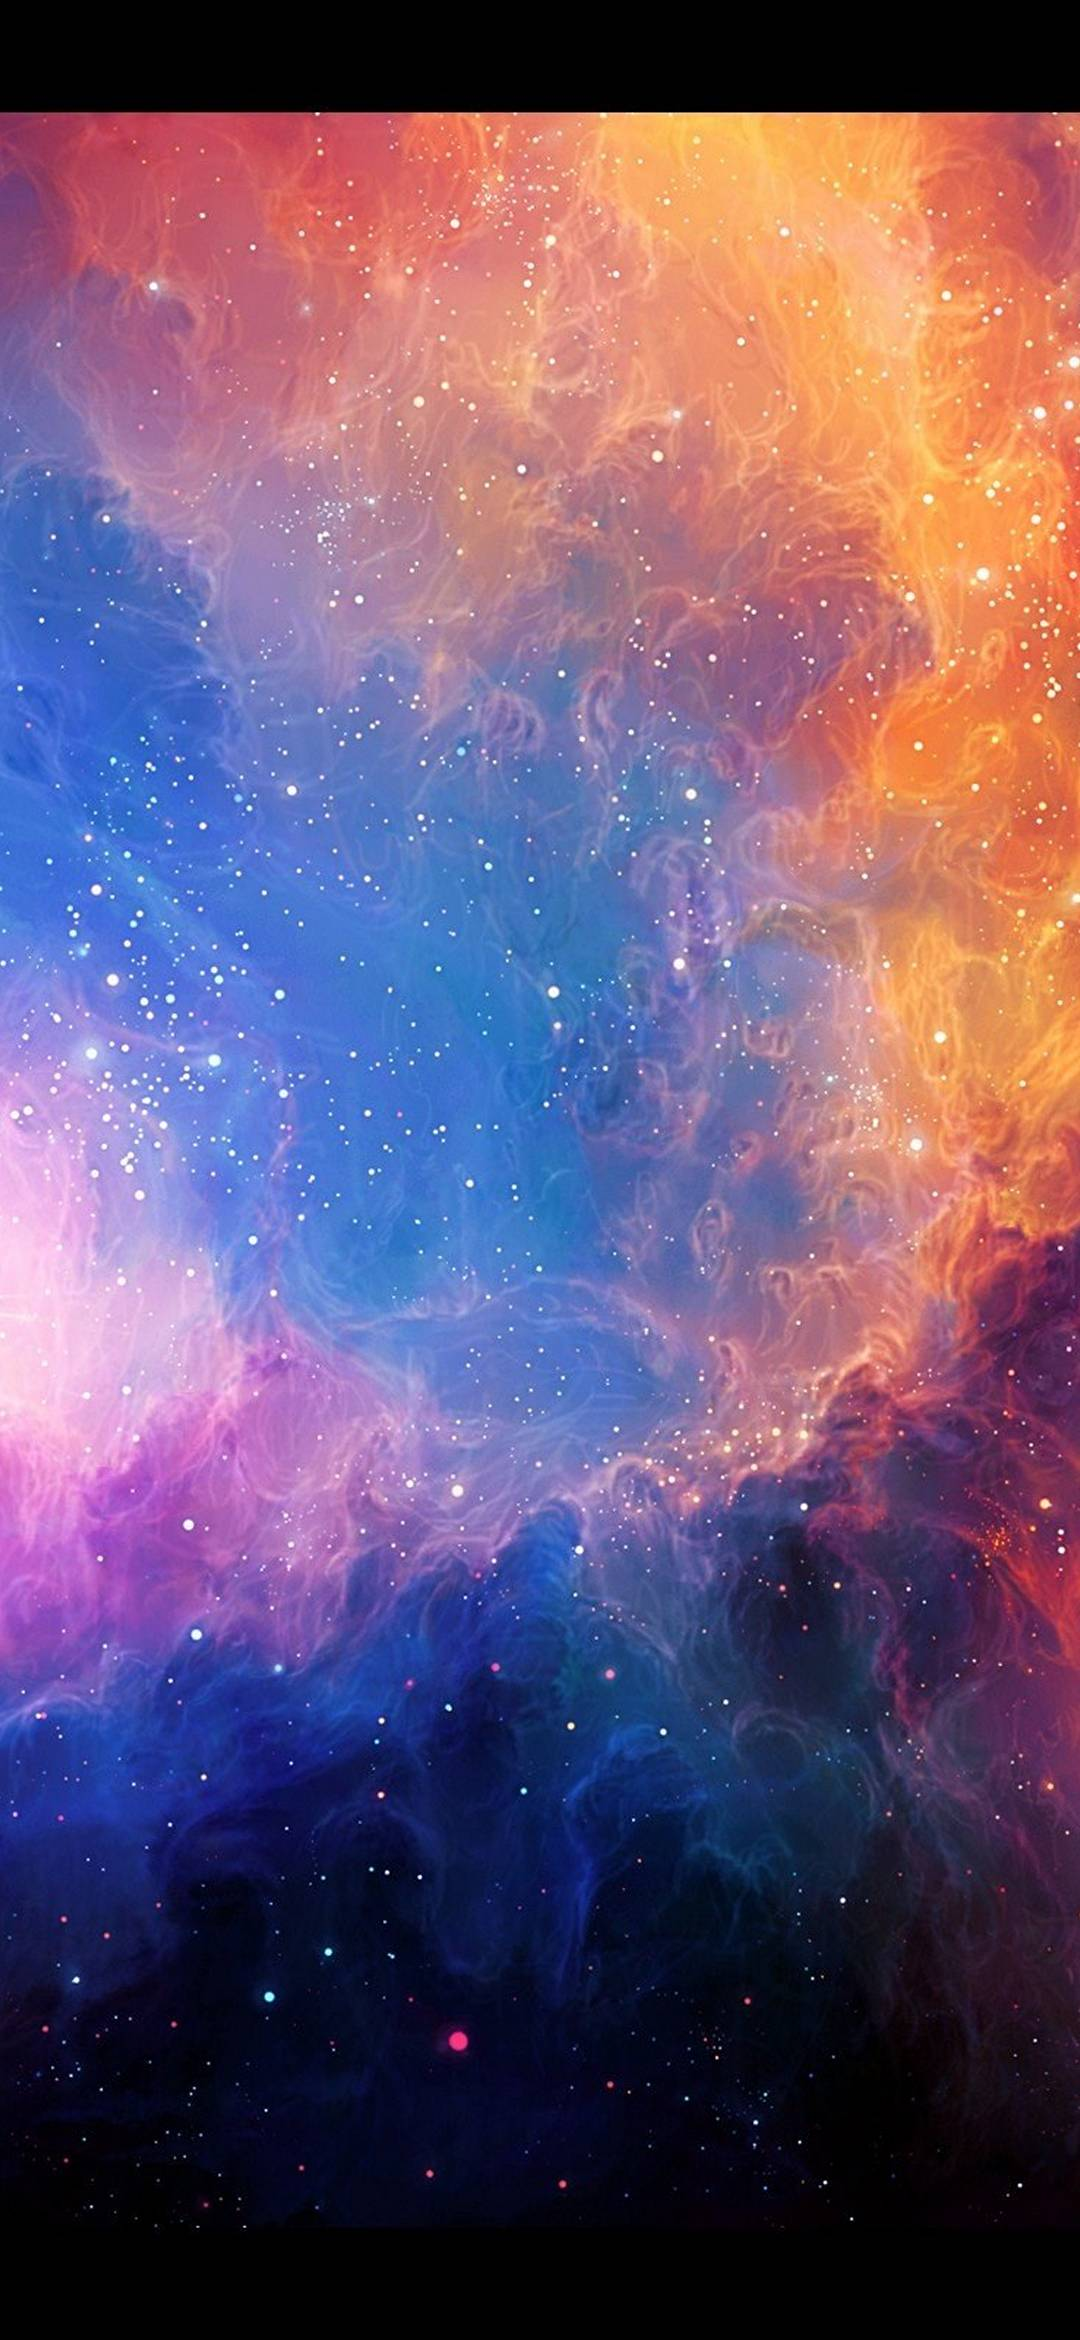 1080 x 2340 wallpaper hd wallpapers - Abstract space wallpaper ...